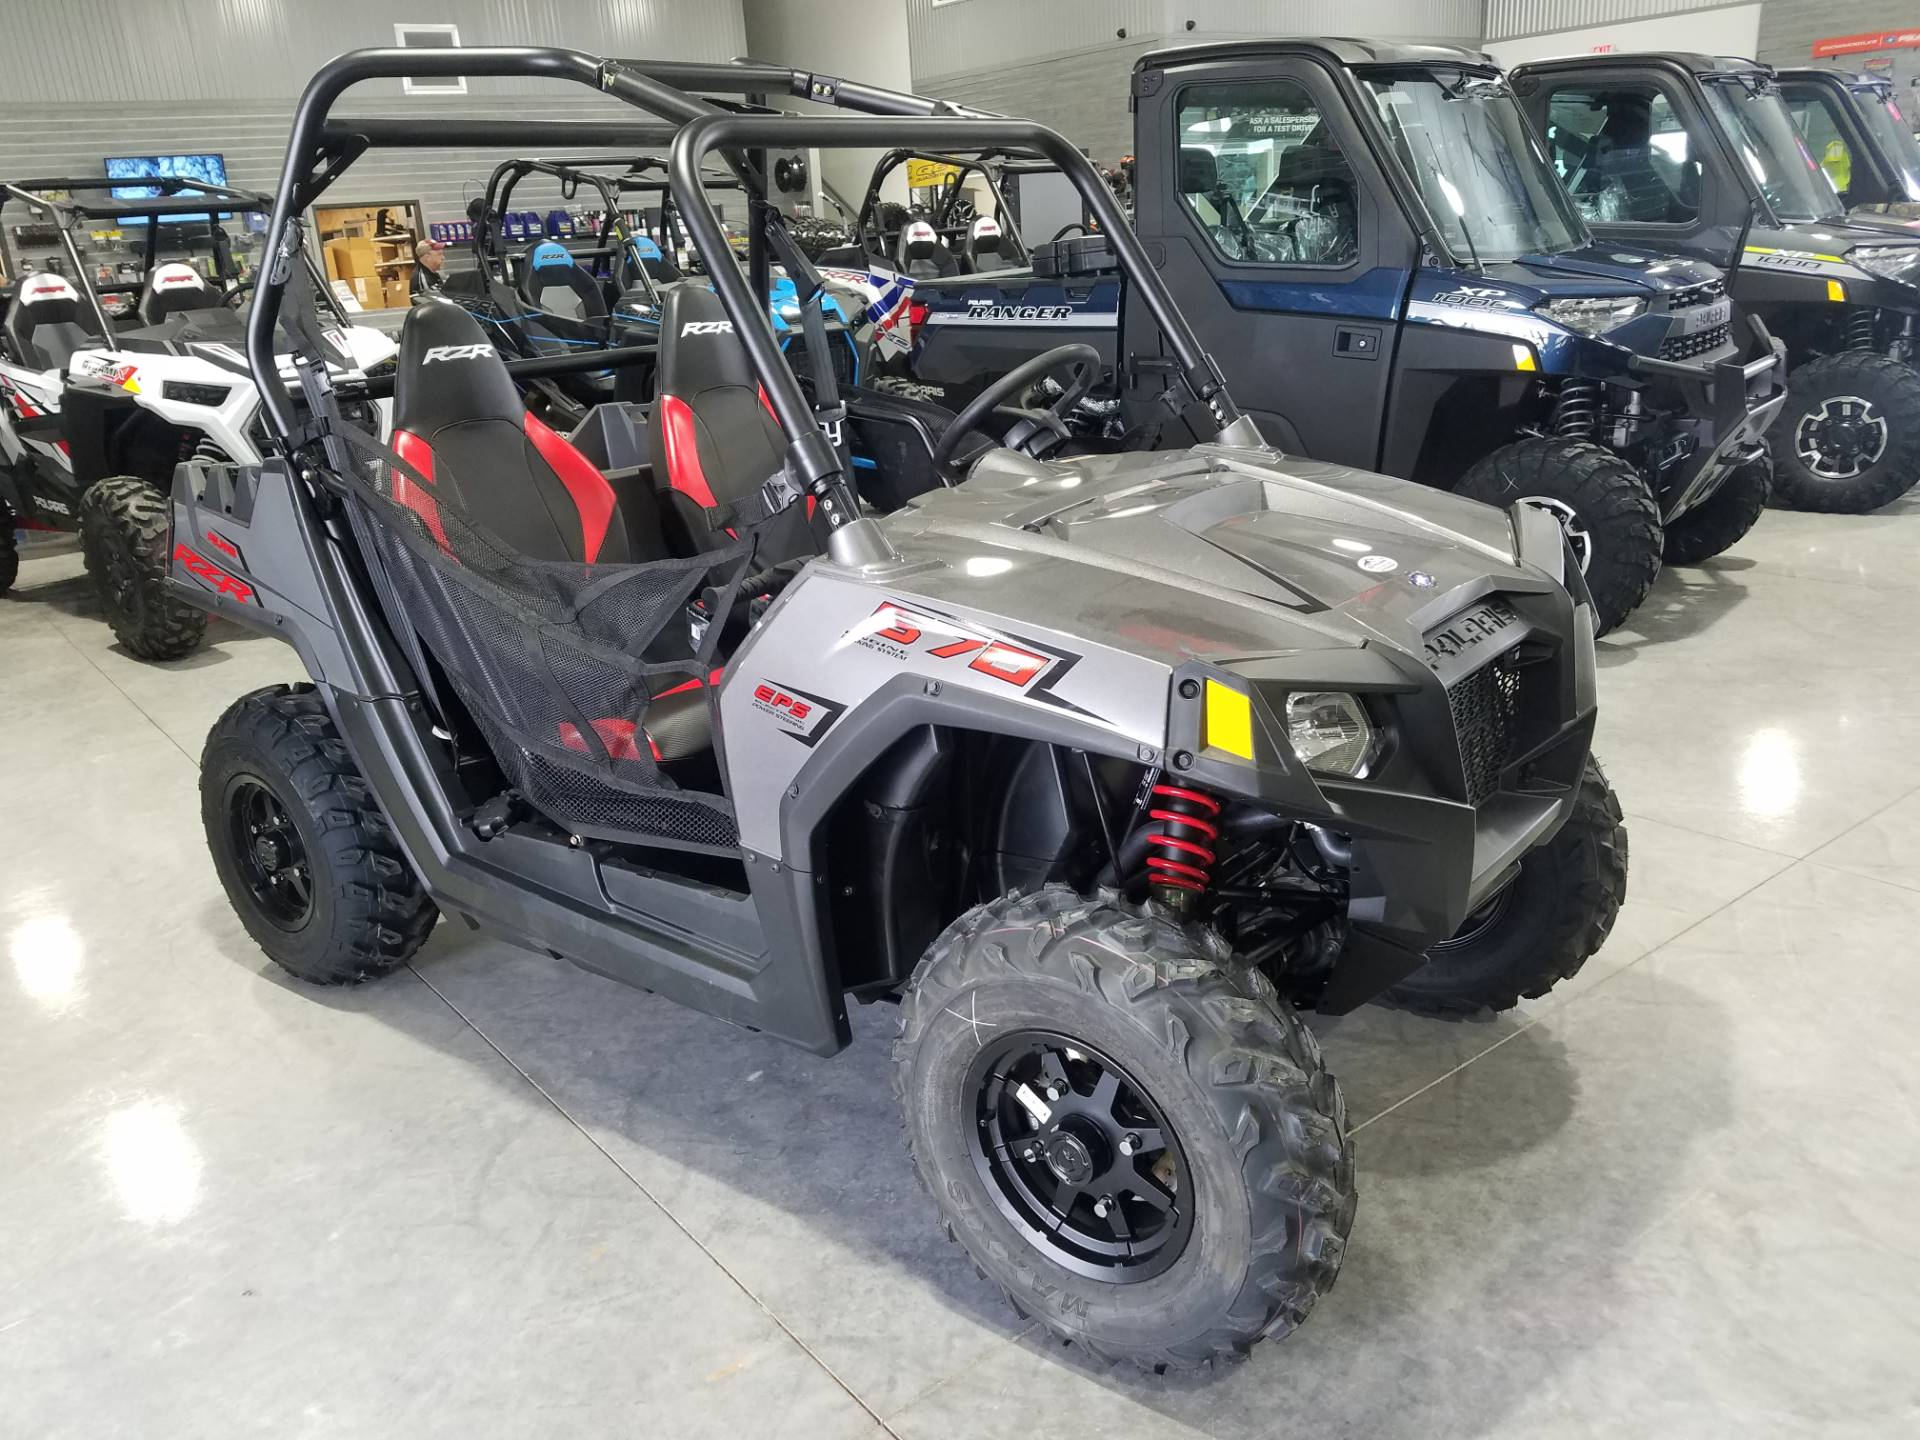 2019 Polaris RZR 570 EPS for sale 89258